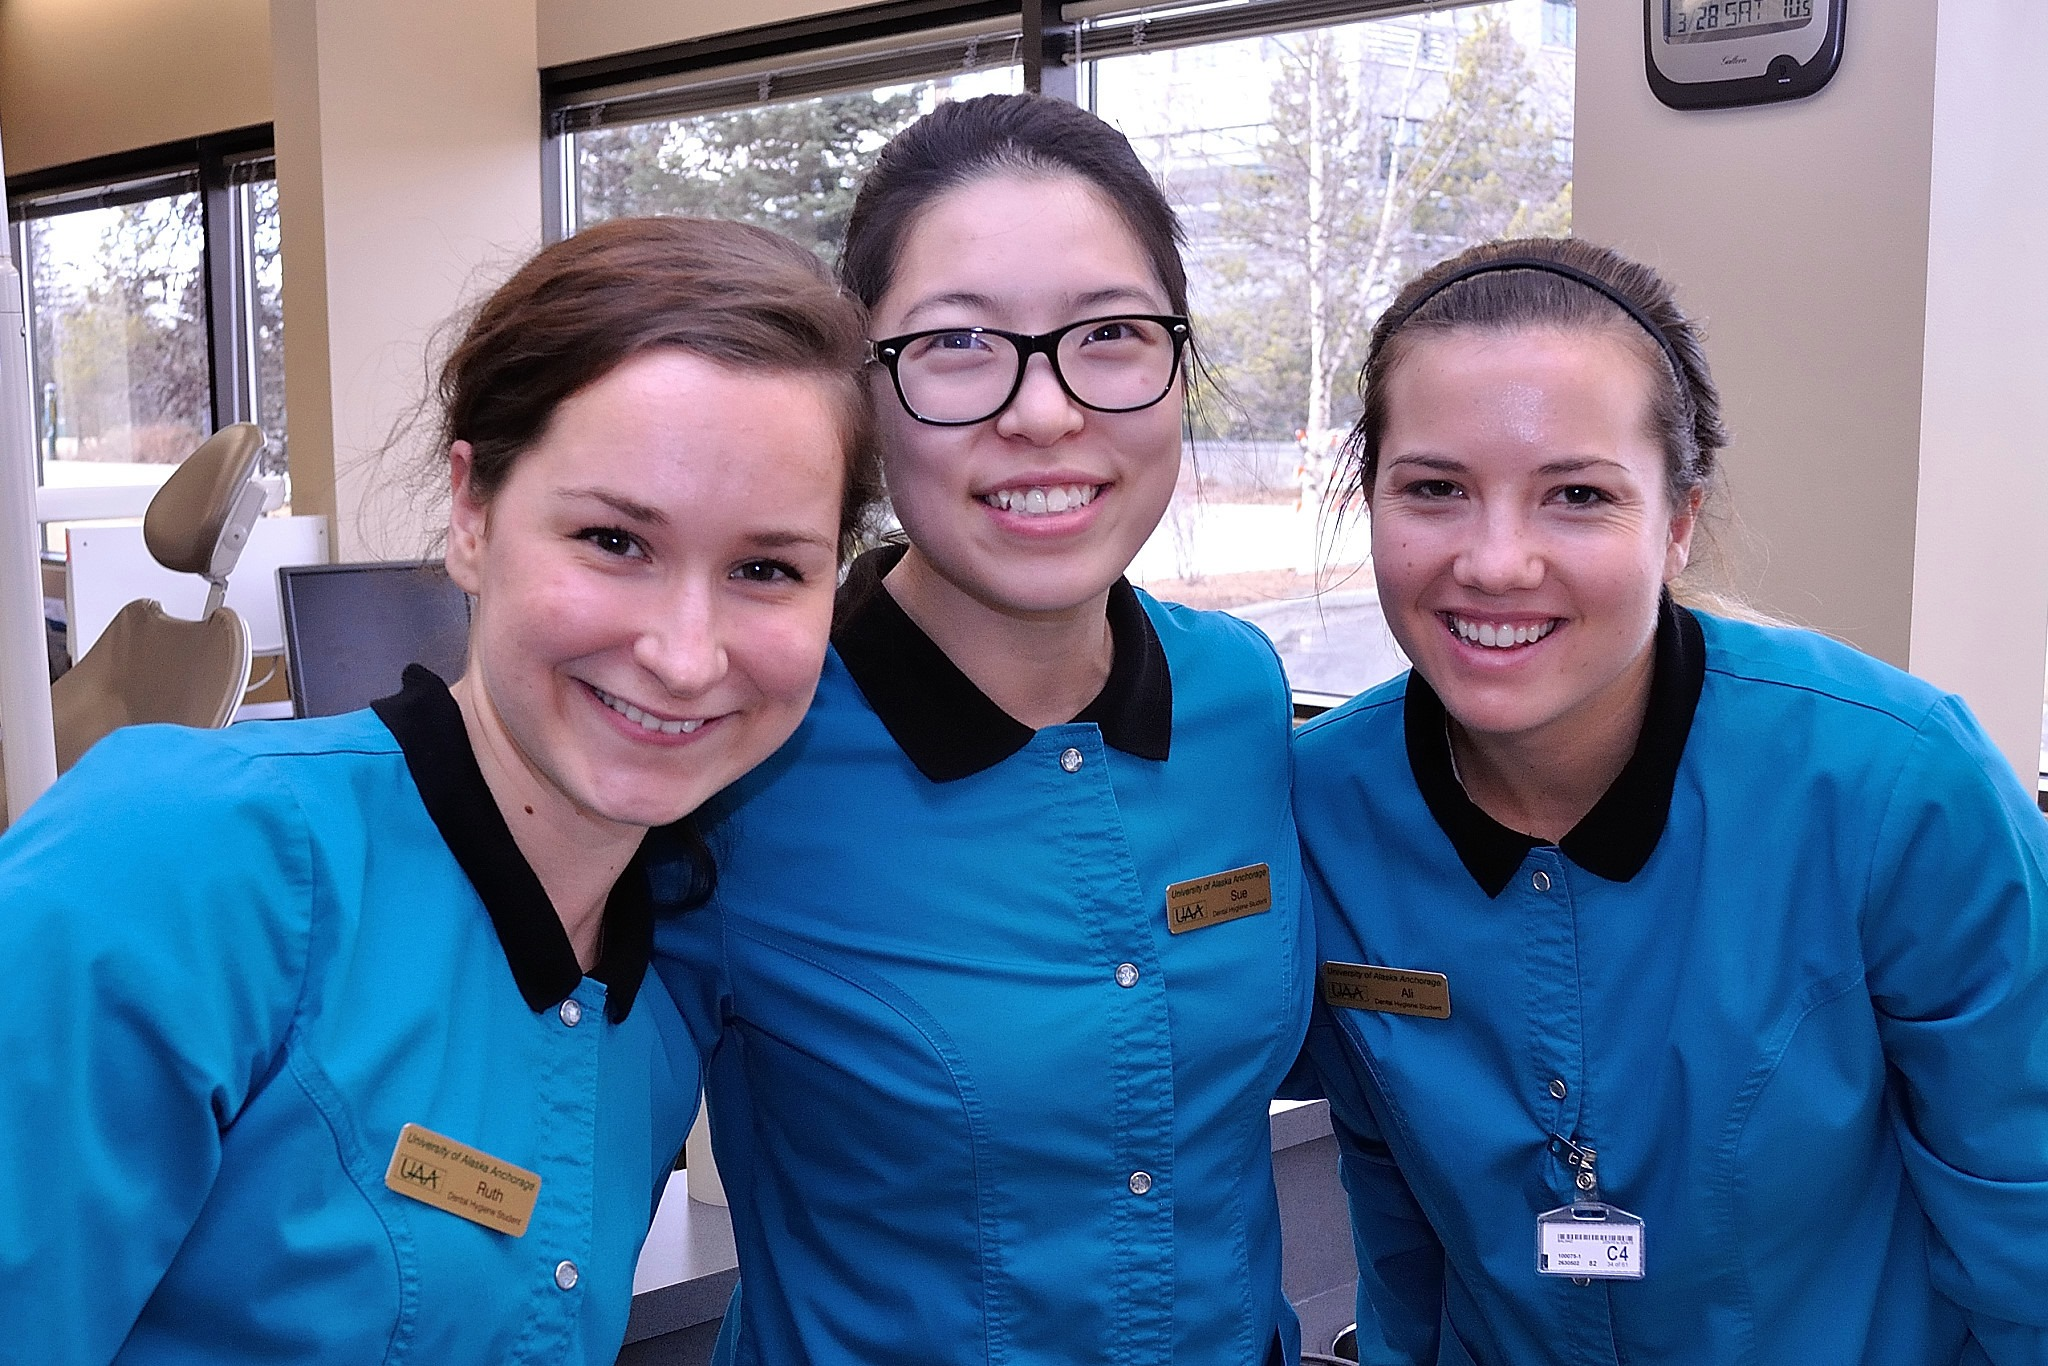 Dental Assistants smiling at camera